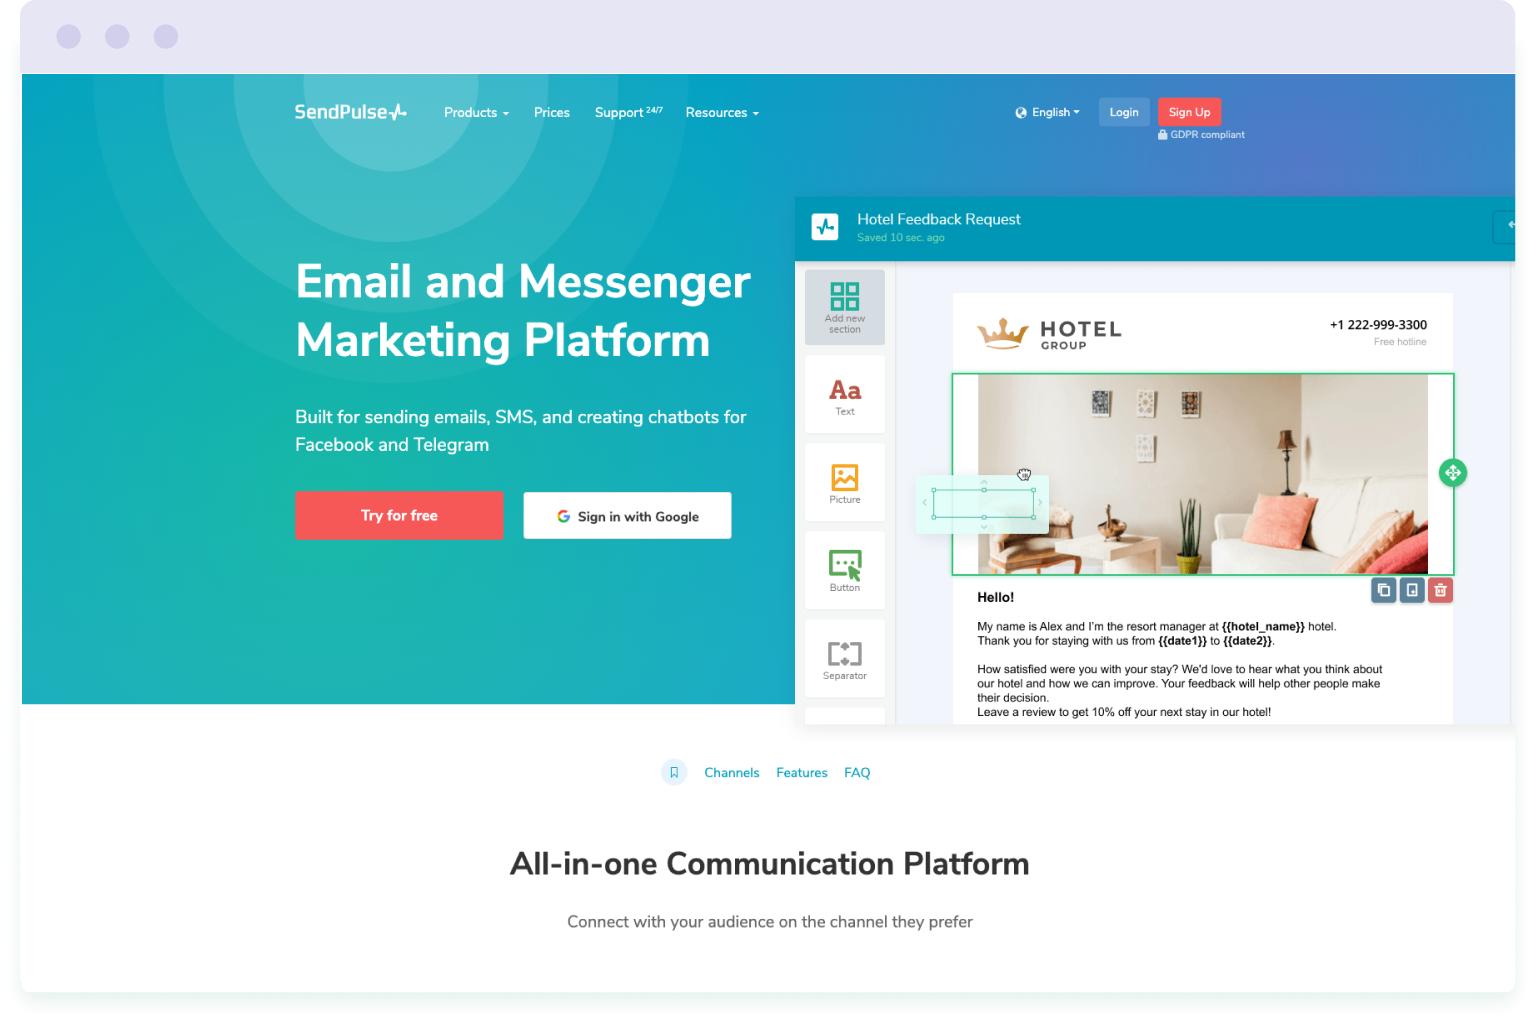 Image of the website homepage for SendPulse, a cheaper alternative to Mailchimp